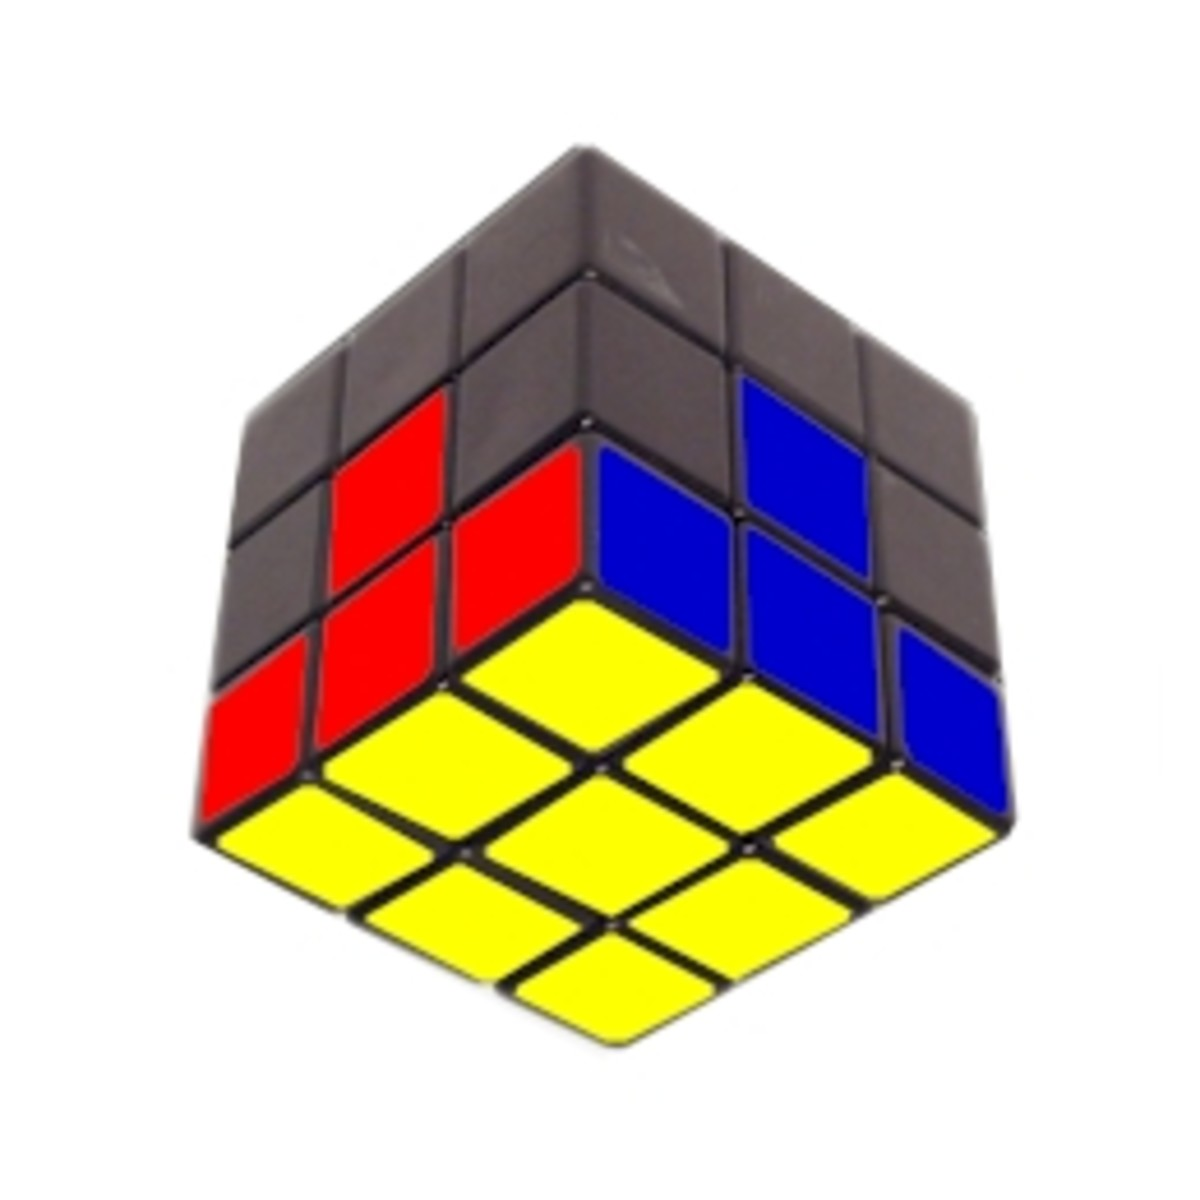 solve_a_rubiks_cube